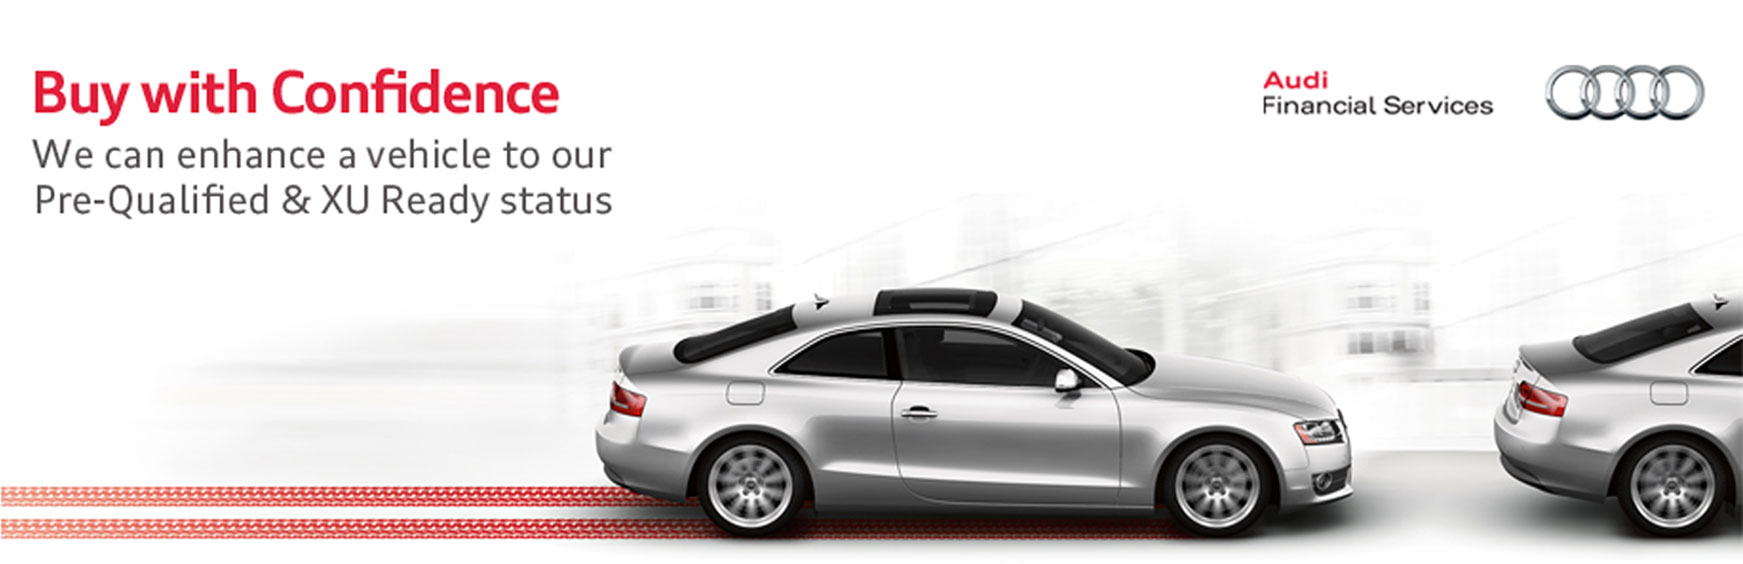 Audi Buy With Confidence - Audi financial